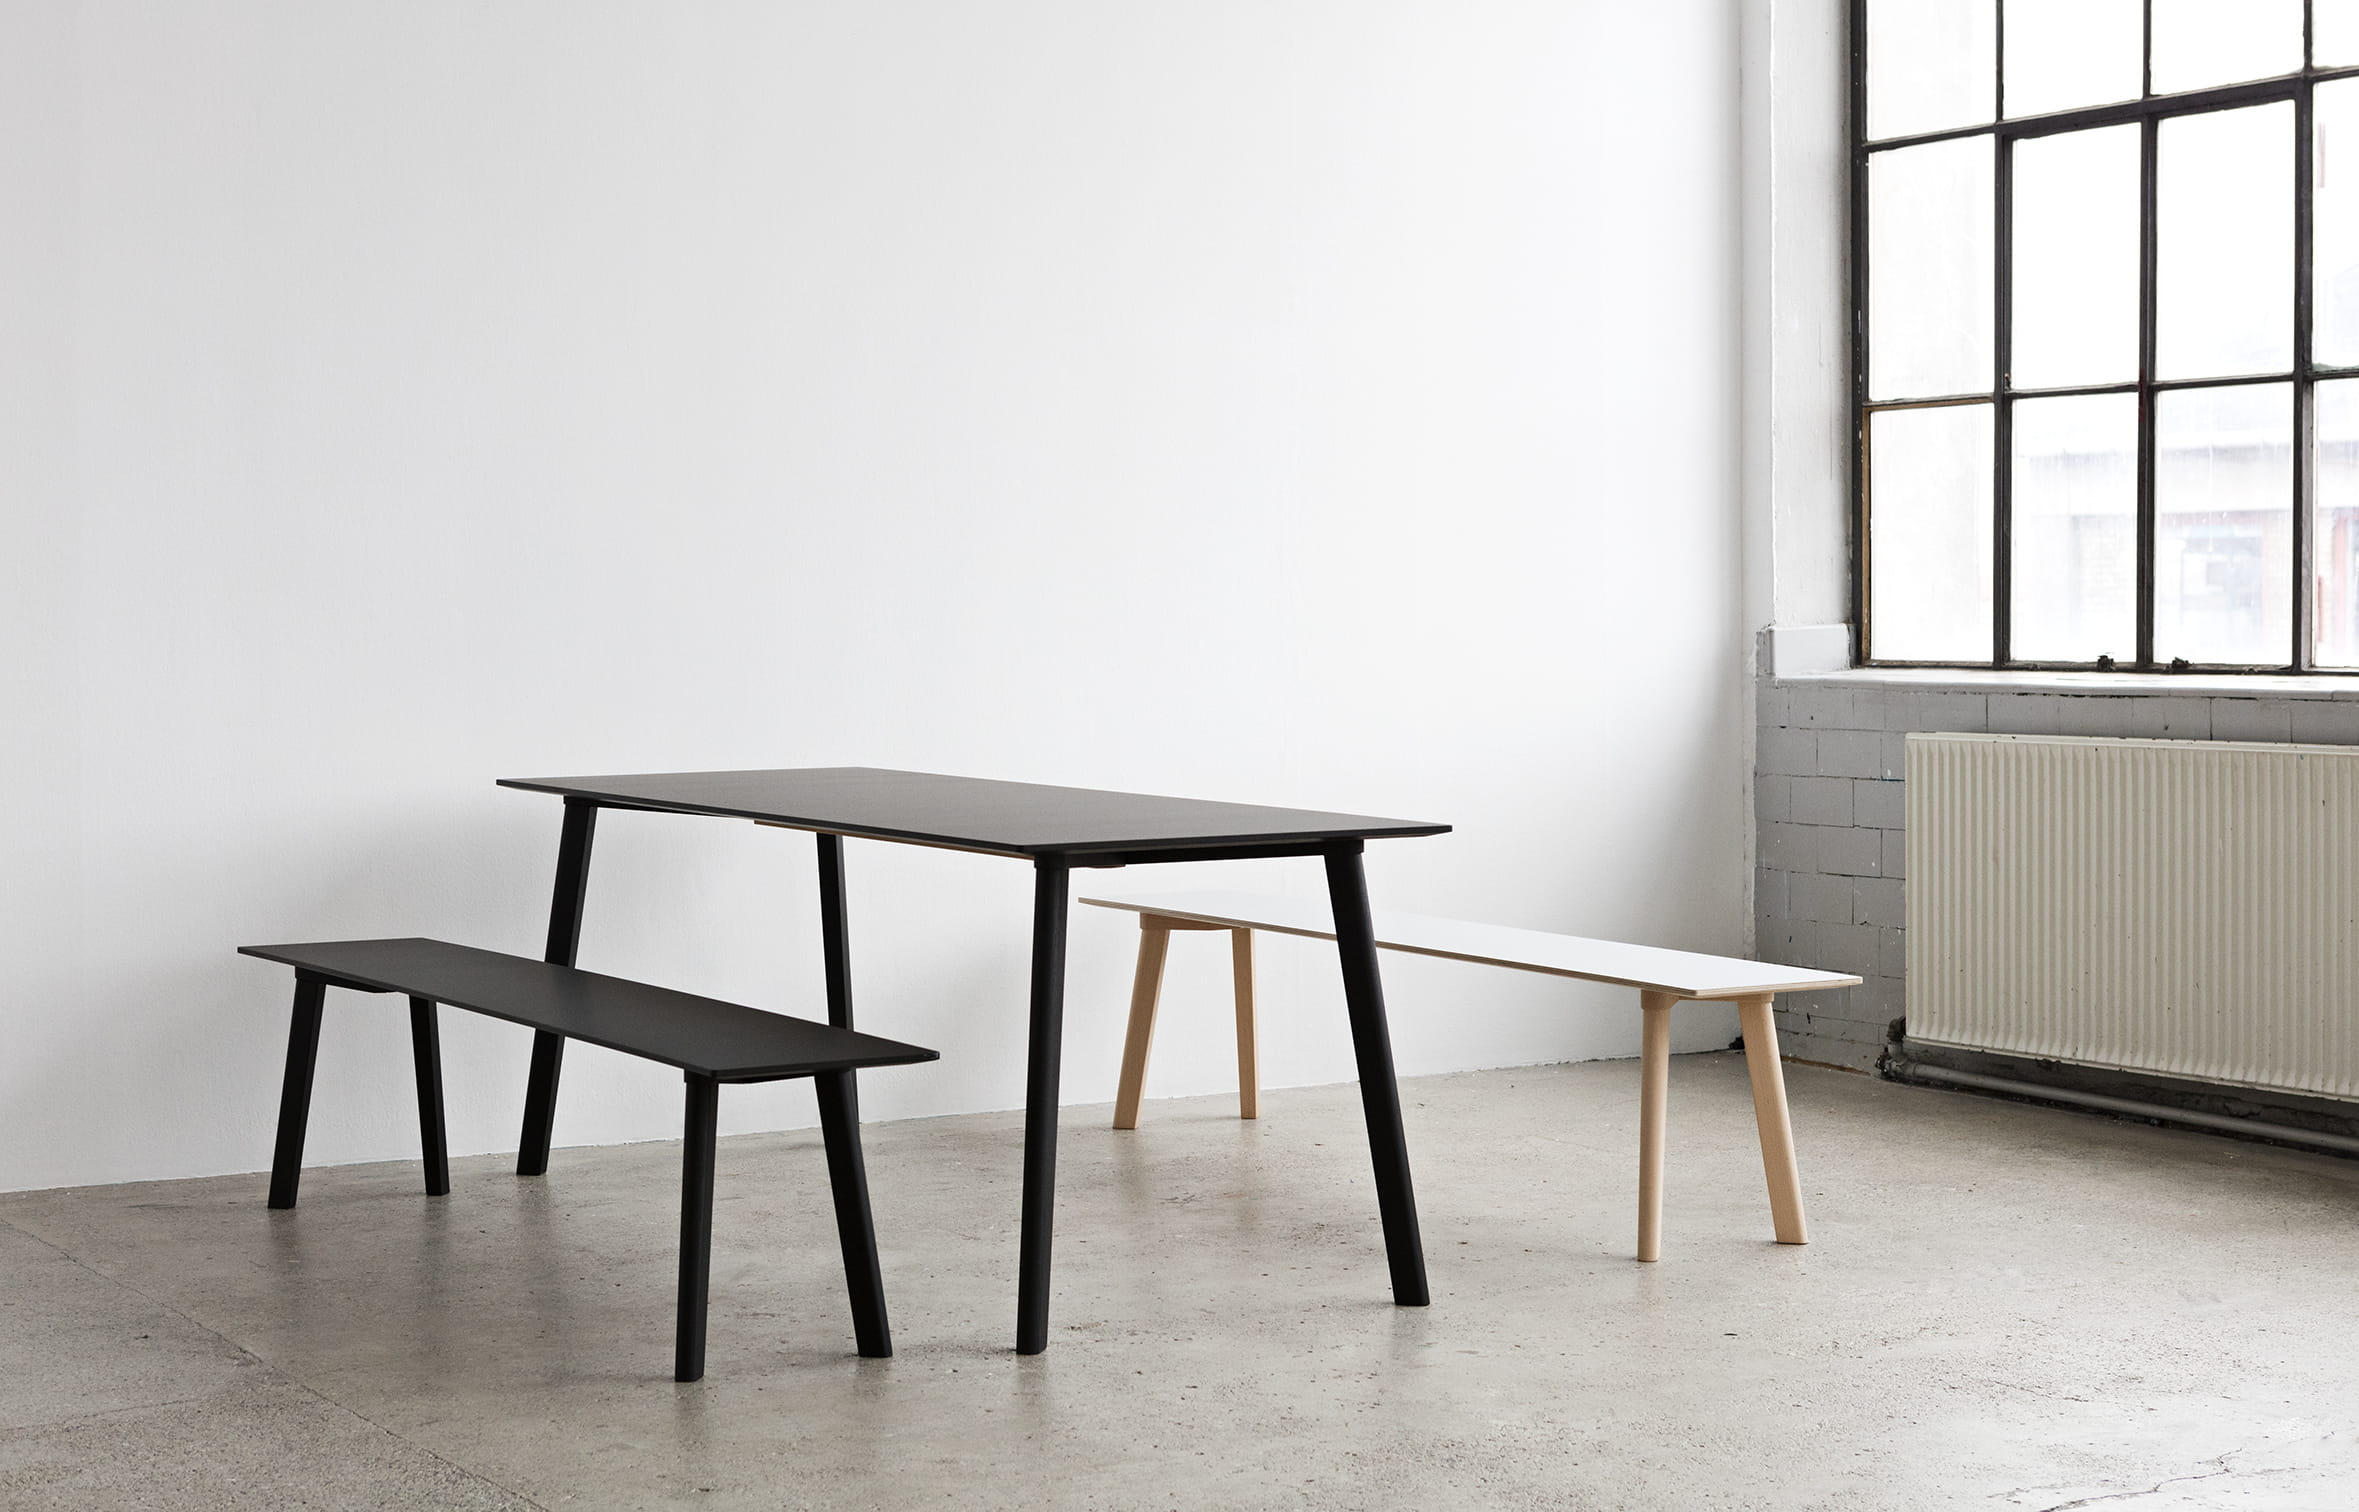 les bouroullec designers stars chez hay. Black Bedroom Furniture Sets. Home Design Ideas